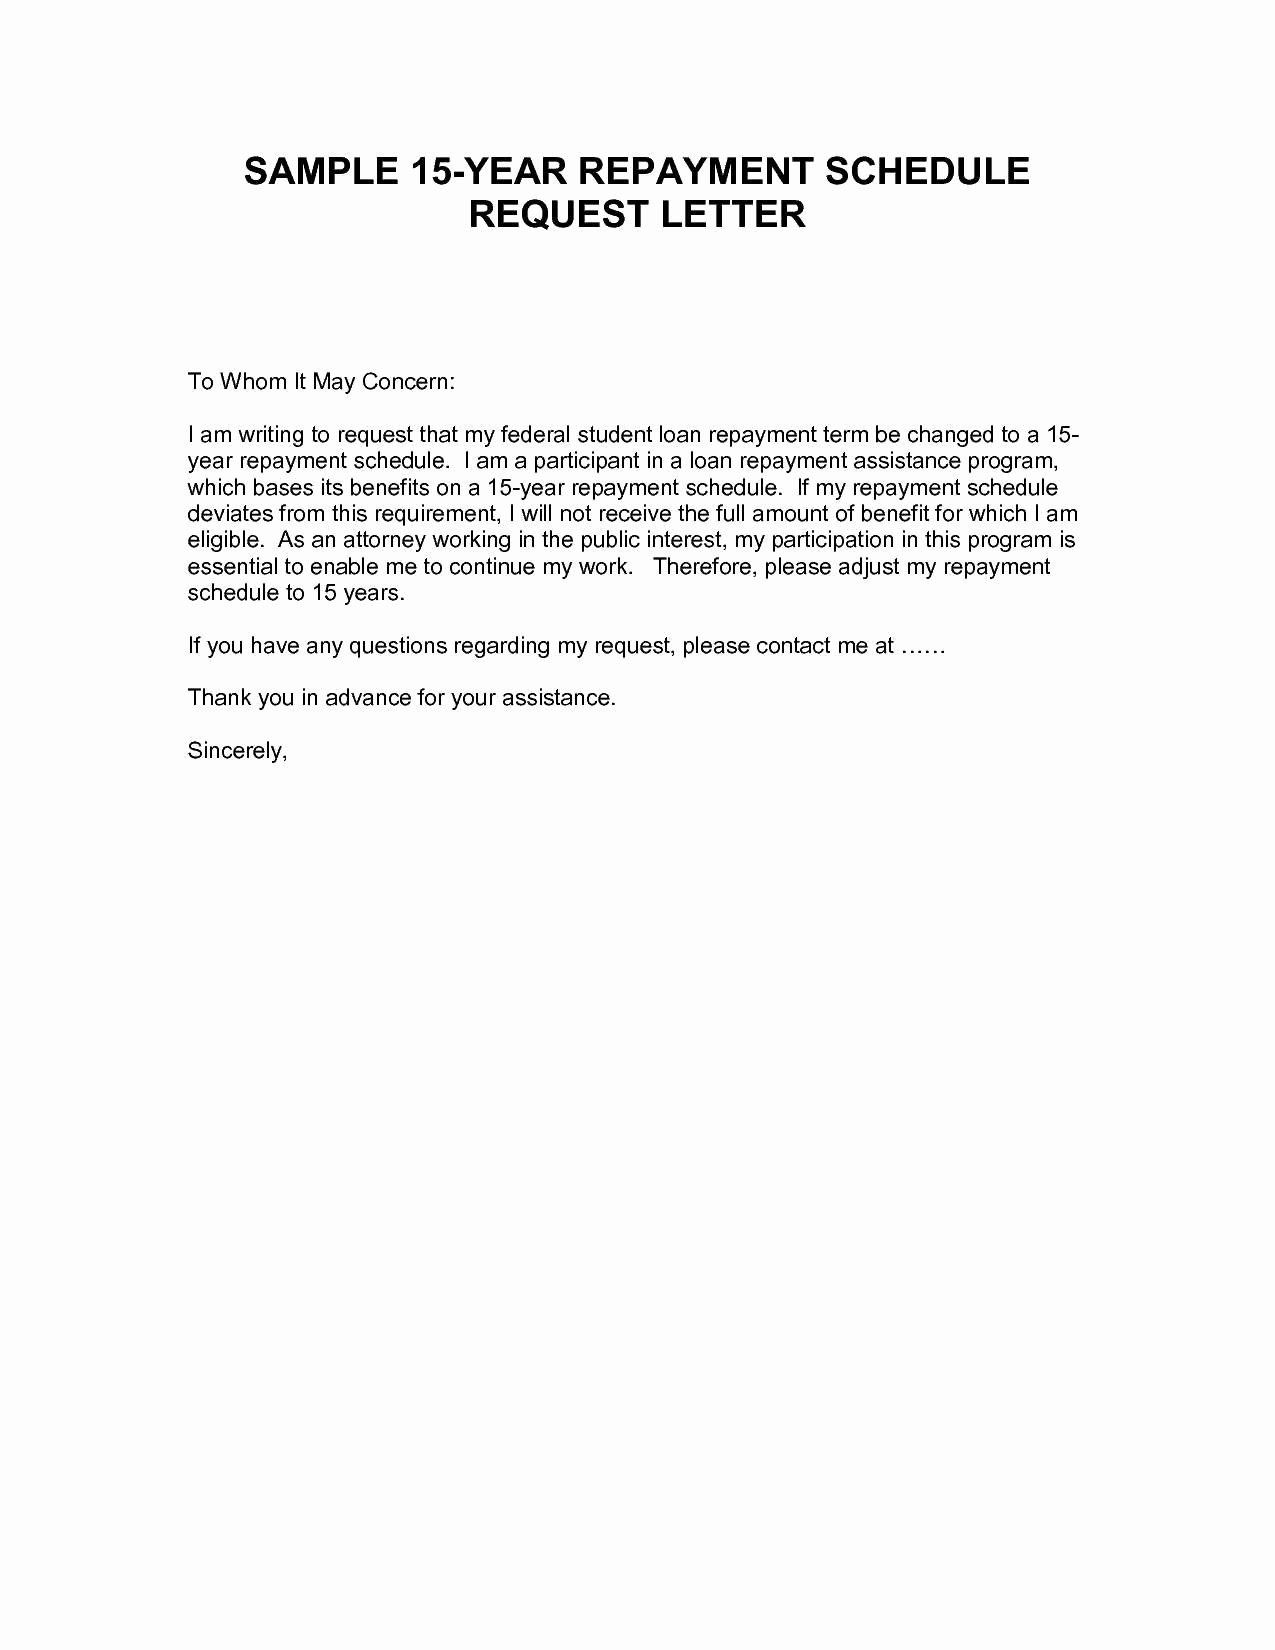 Personal Loan Repayment Letter Sample from i.pinimg.com